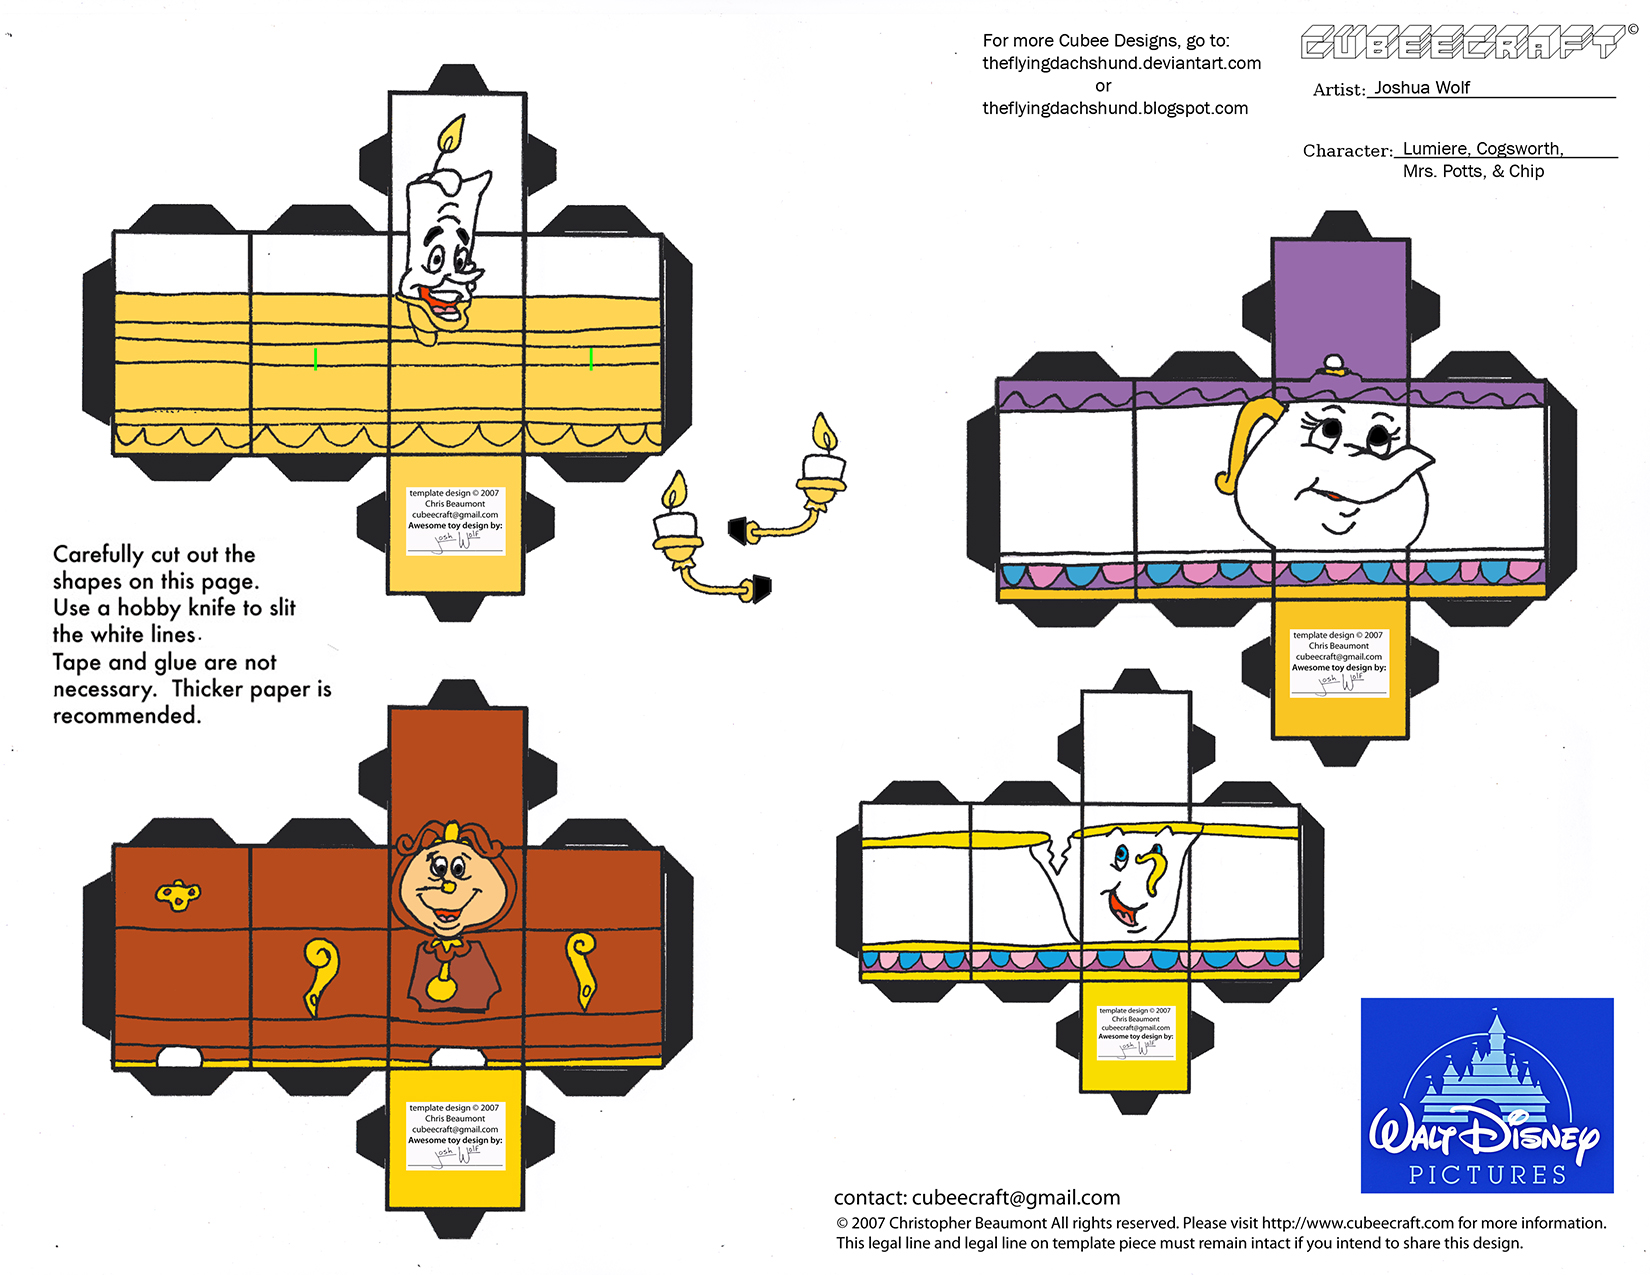 Dis44 Lumiere Cogsworth Mrs Potts Chip Cubees By